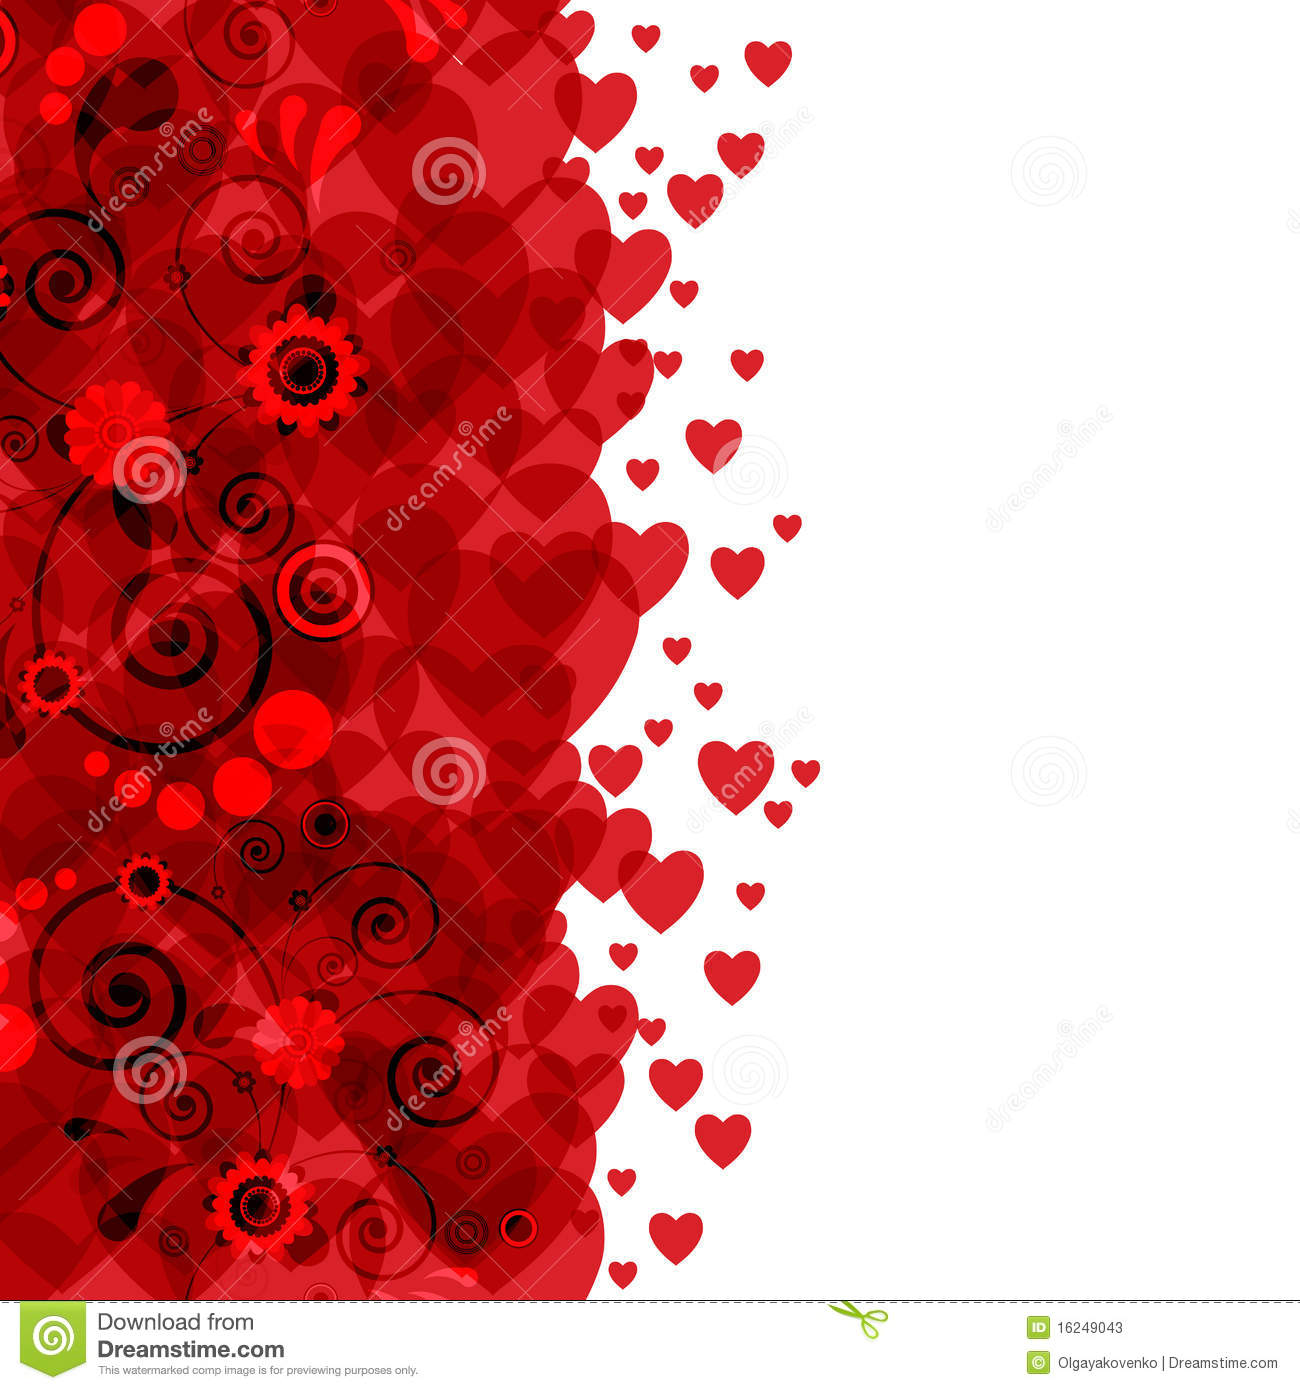 picture of flowers and hearts